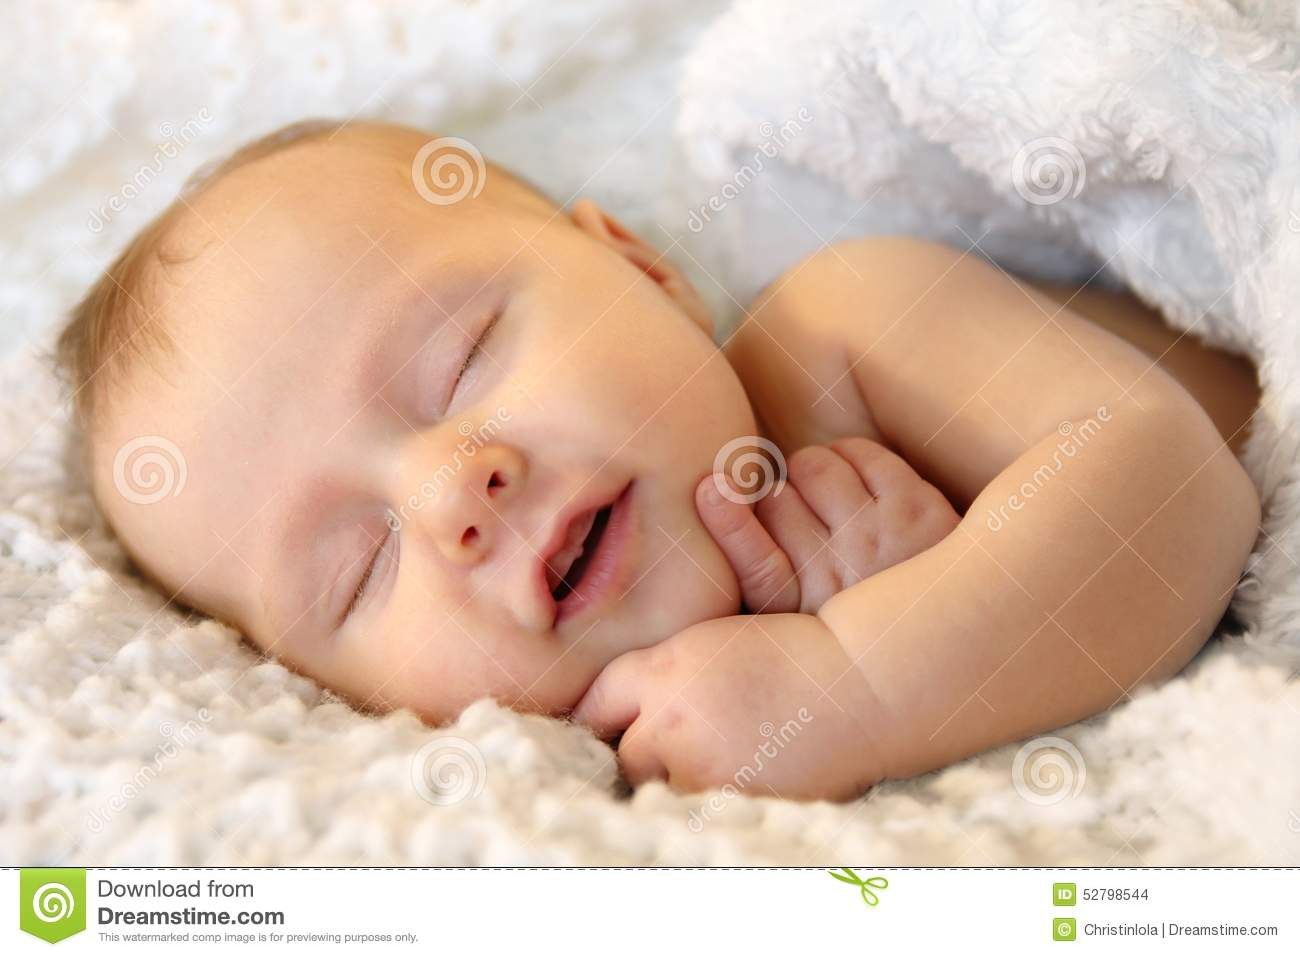 Smiling Sleeping Newborn Baby Girl Wrapped In White Blanket Stock Photo Image Of Hands Rest 52798544